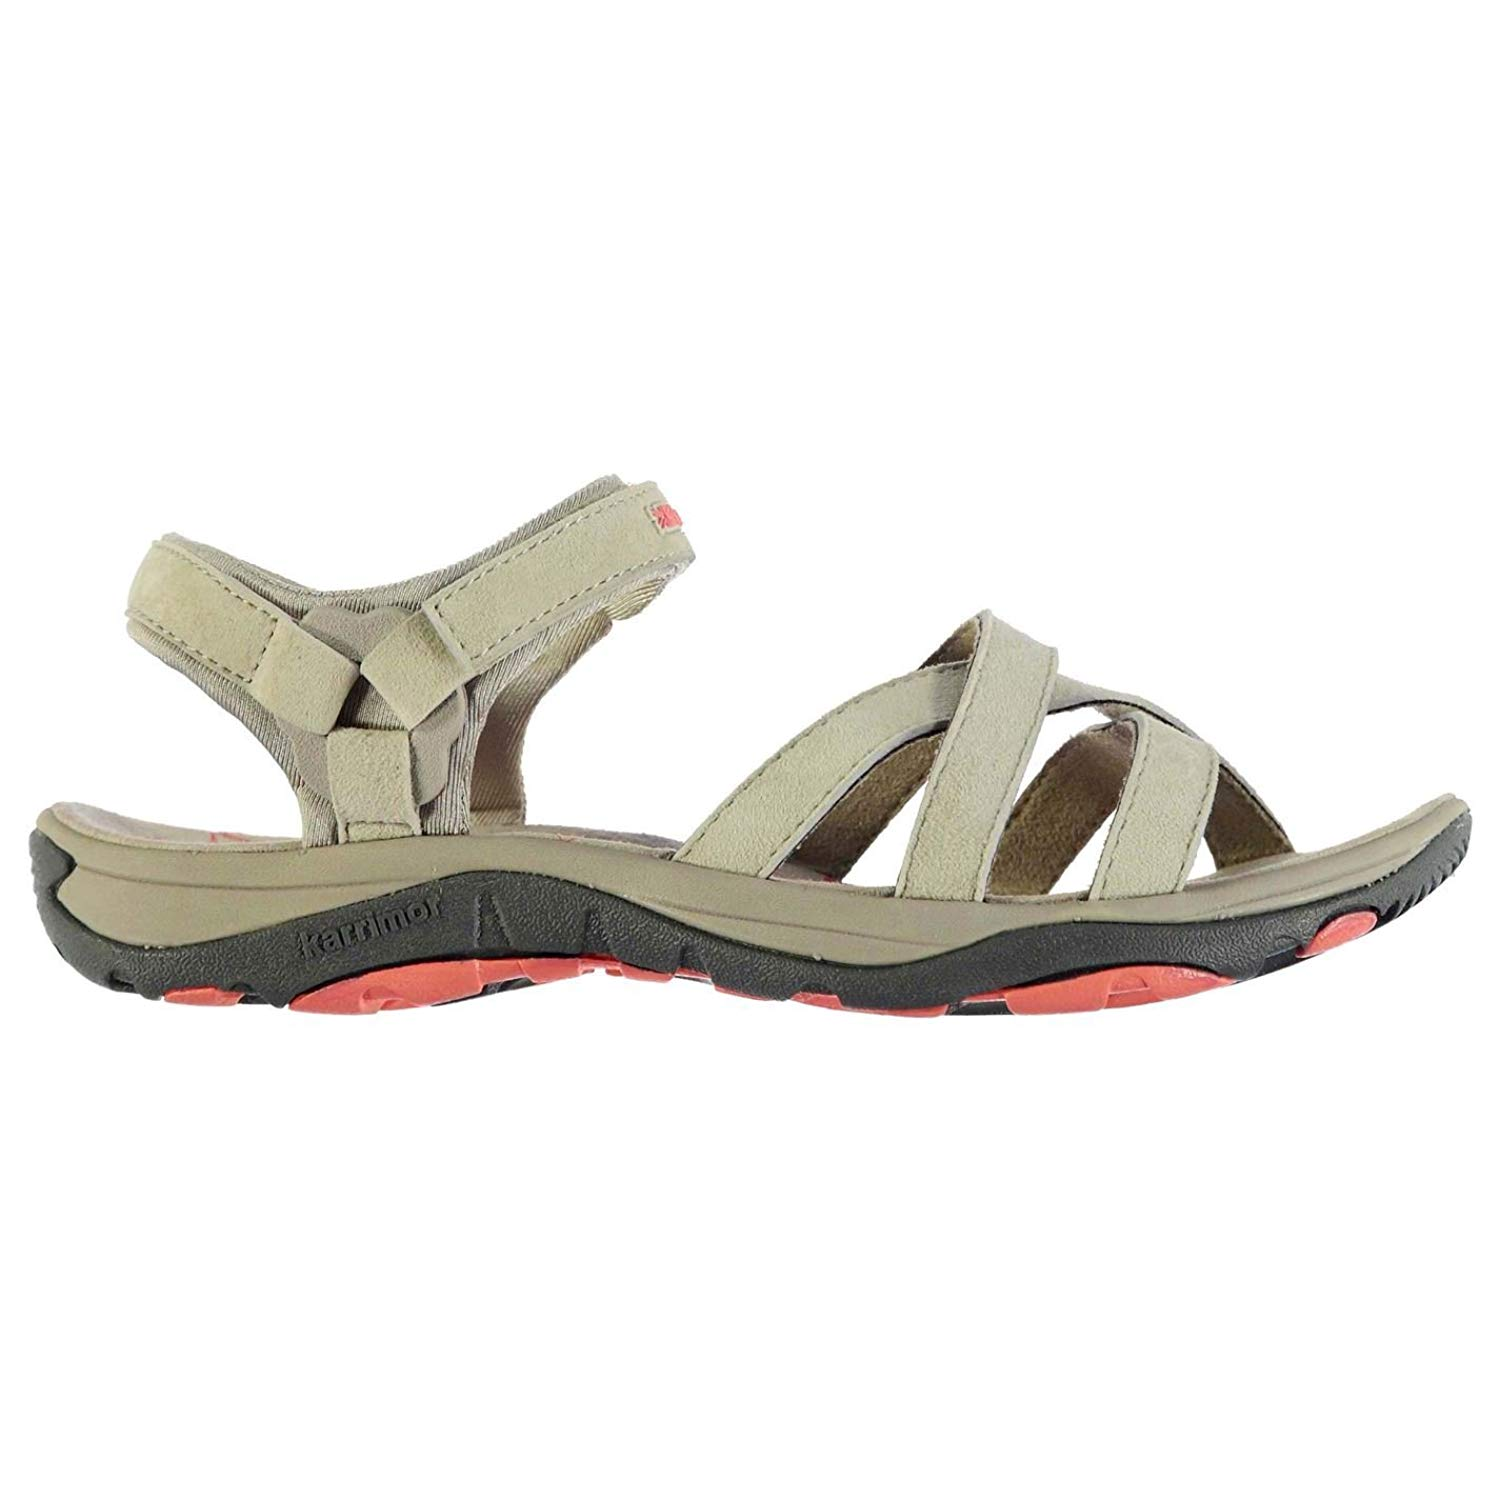 2be138ba551 Get Quotations · Karrimor Womens Salina Leather Walking Sandals Shoes Strap